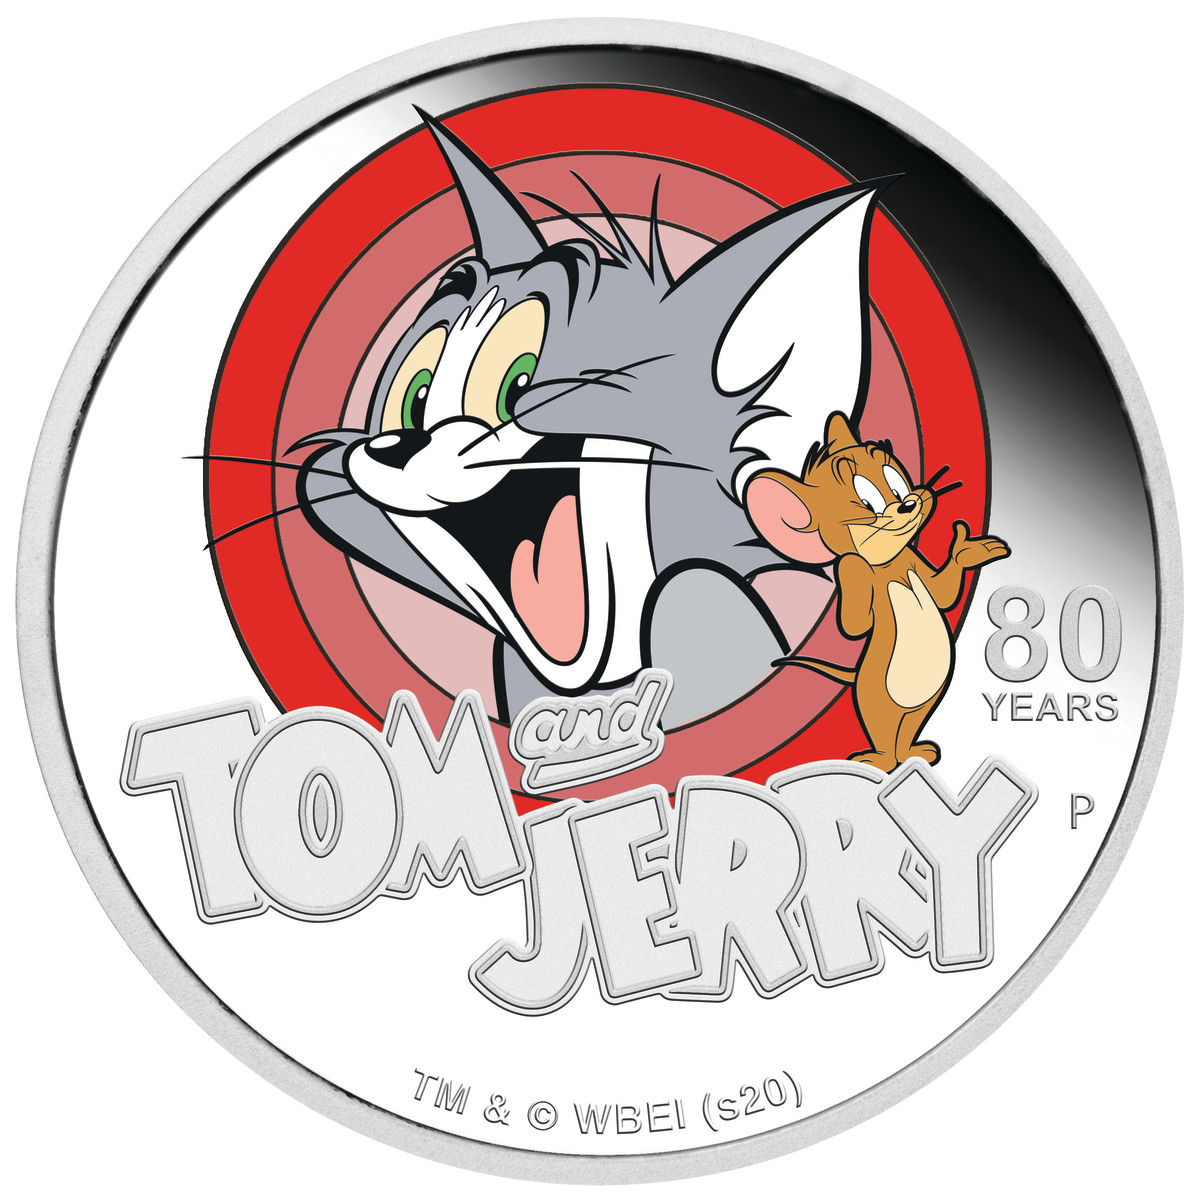 TOM AND JERRY and all related characters and elements © & ™ Turner Entertainment Co. (s20)  Image courtesy Perth Mint